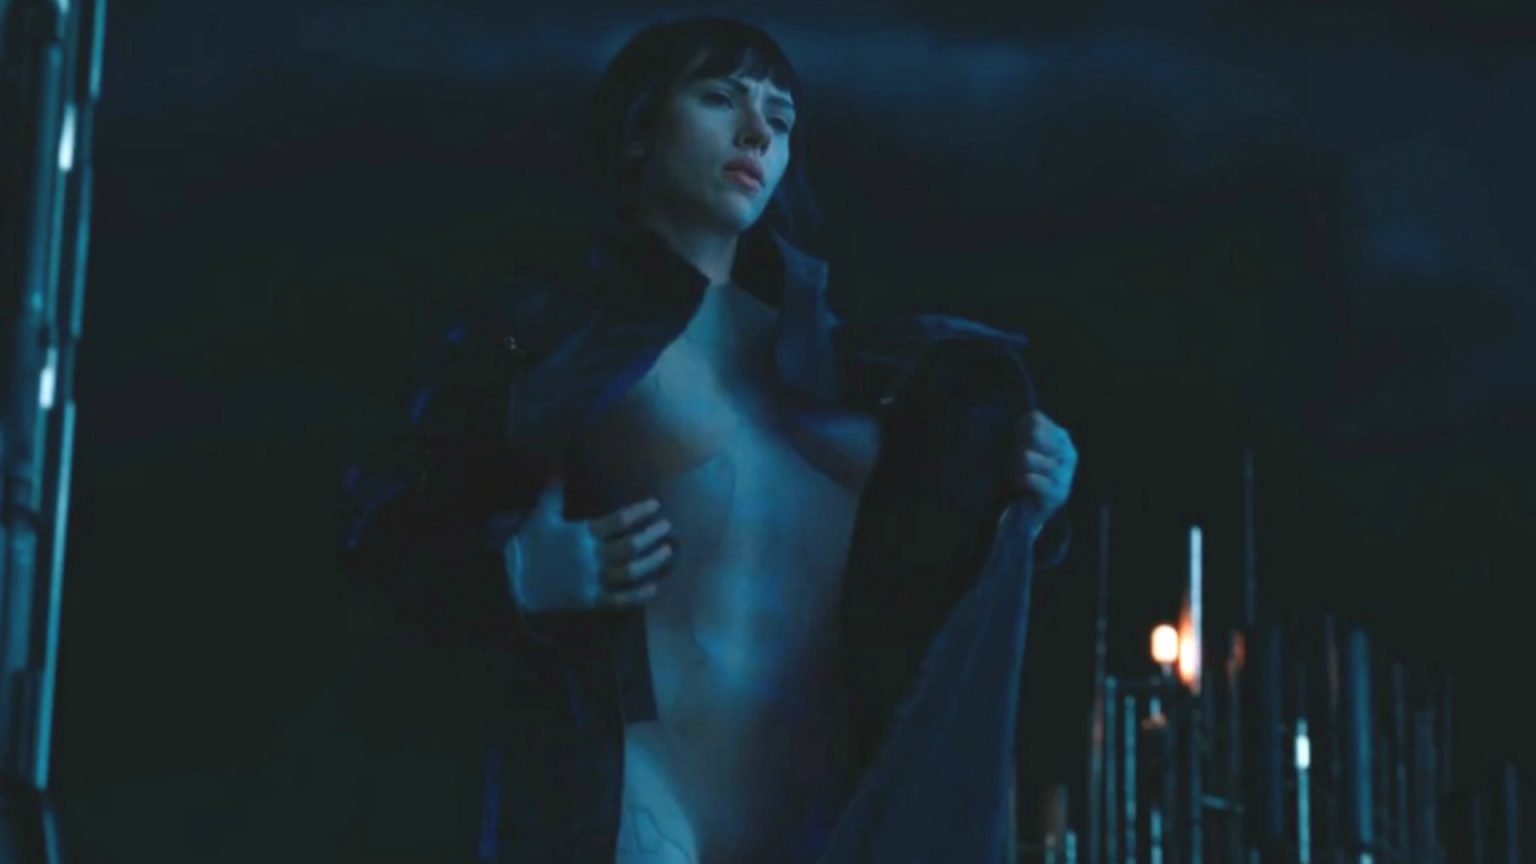 First full Ghost in the Shell trailer drops starring